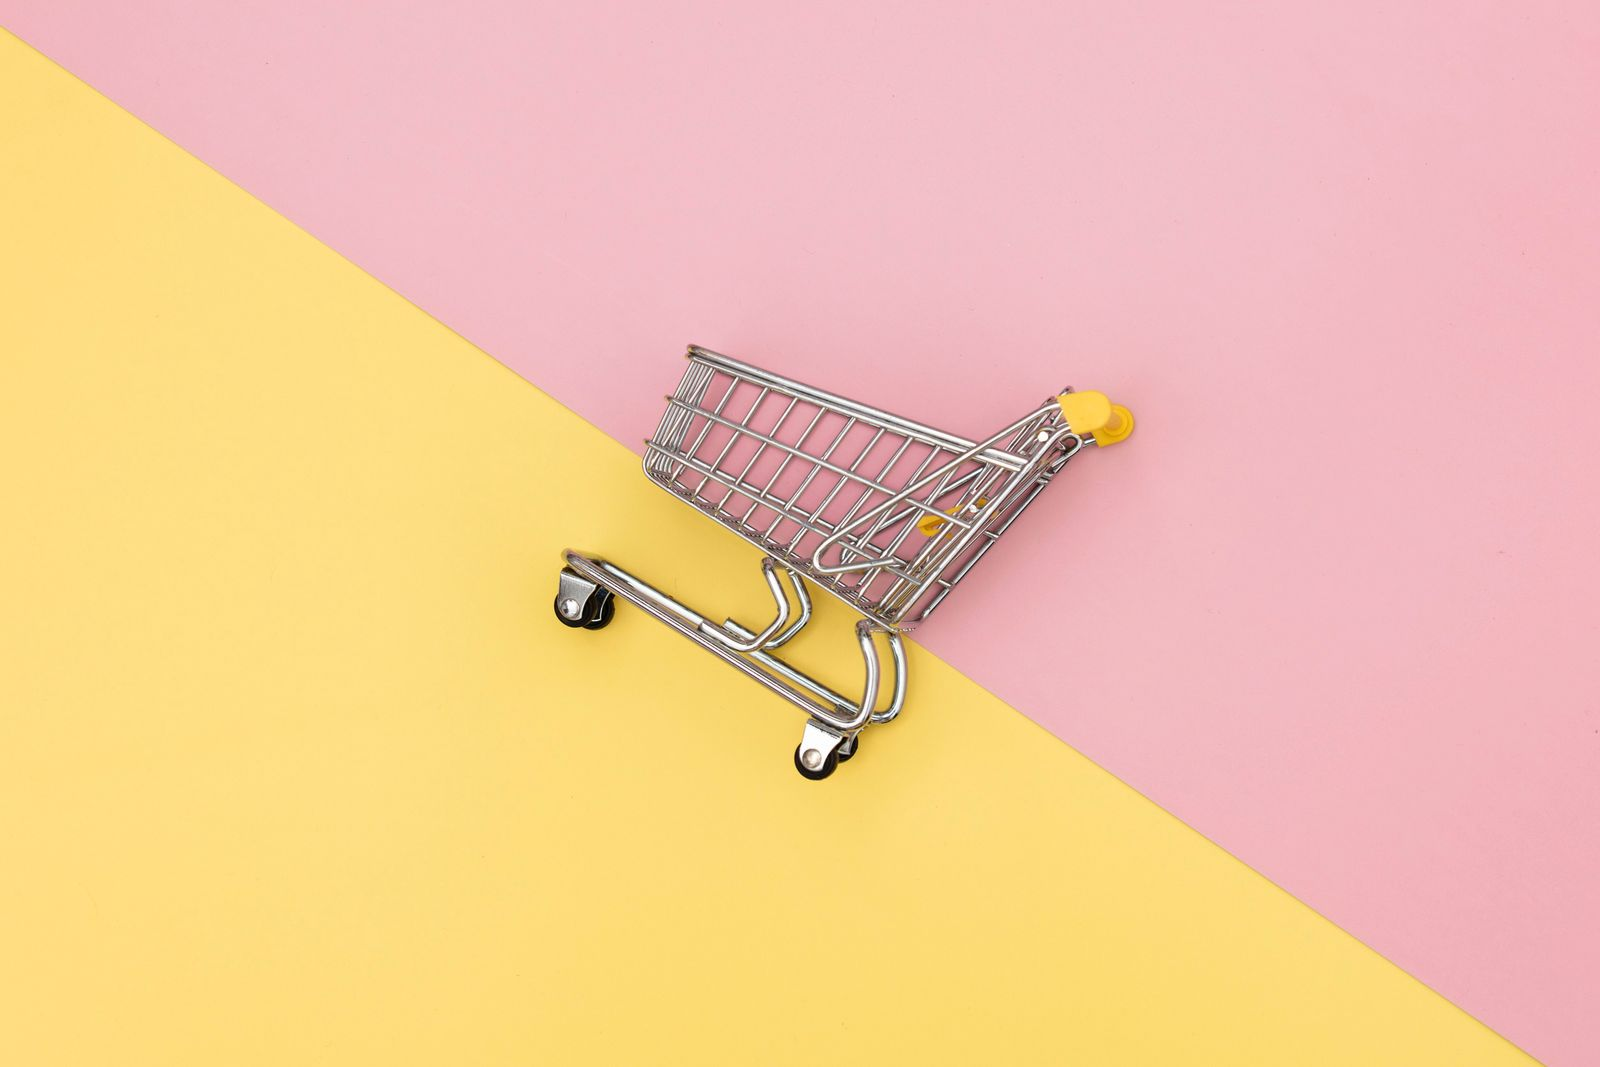 Metal shopping cart on pink and yellow backgrounds.